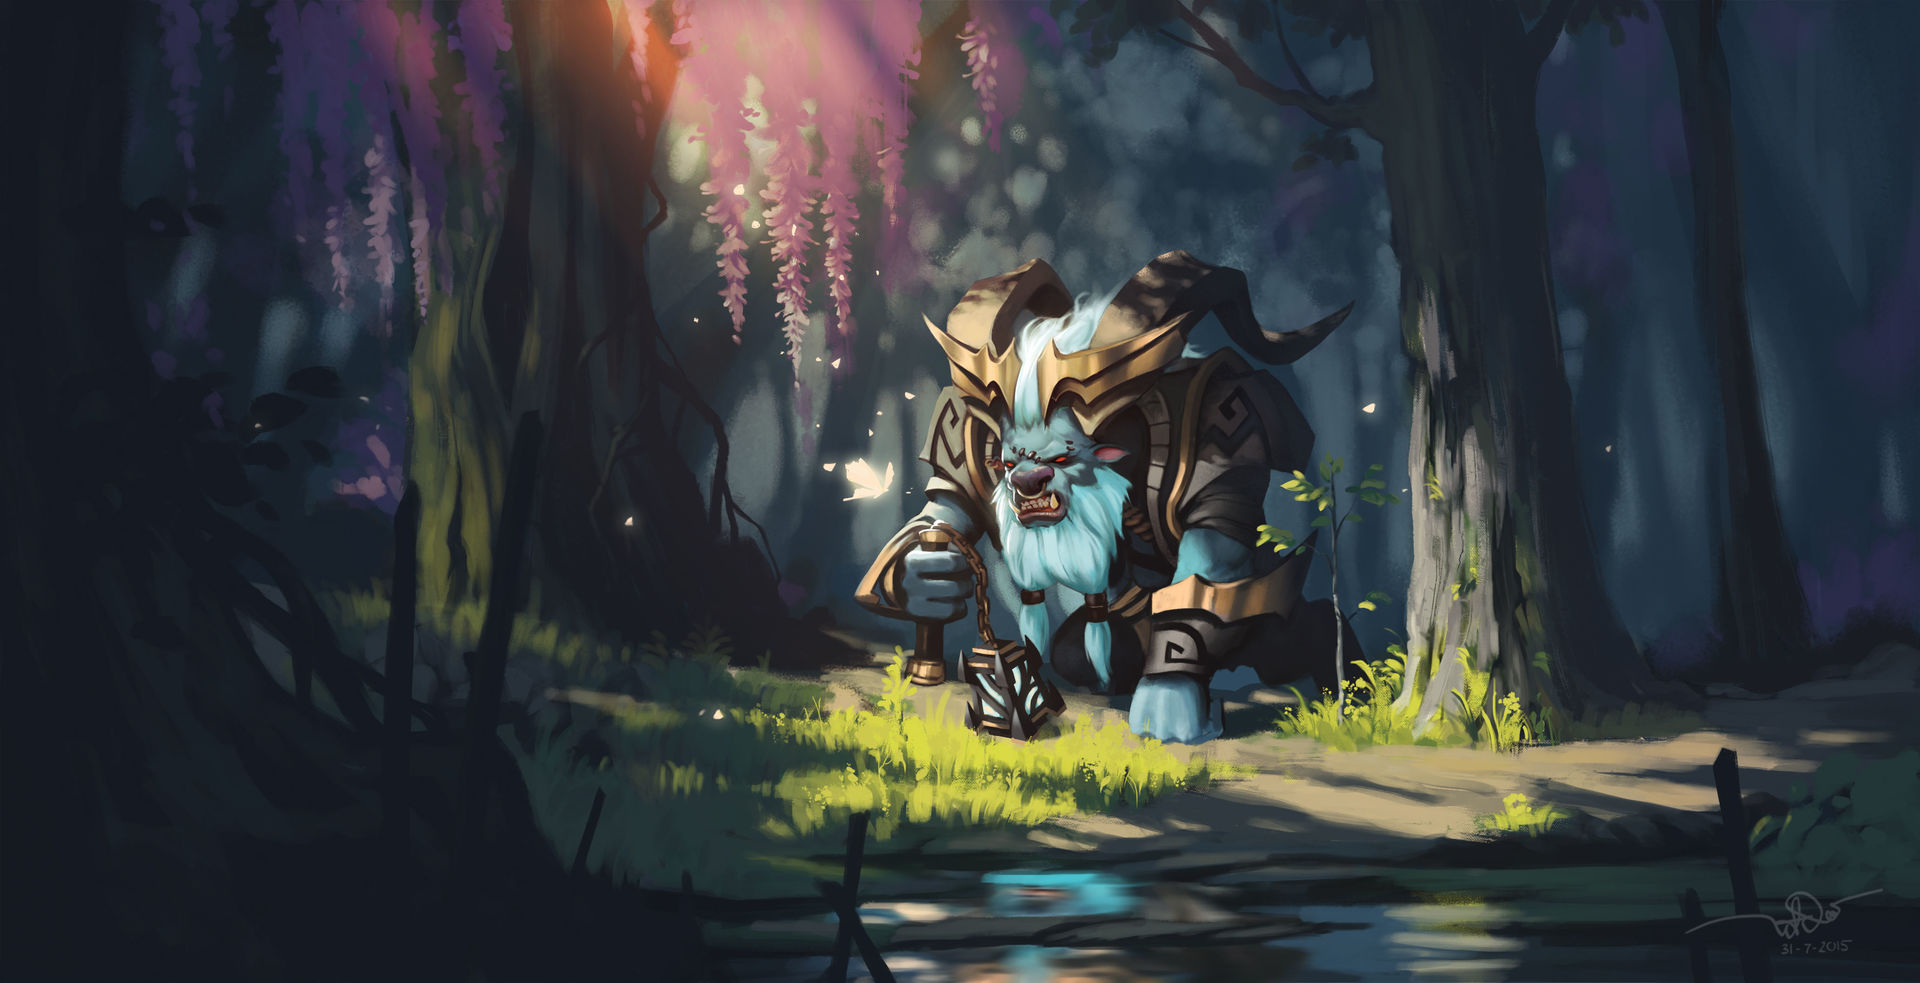 dota 2 wallpaper – free dota2 wallpapers hd